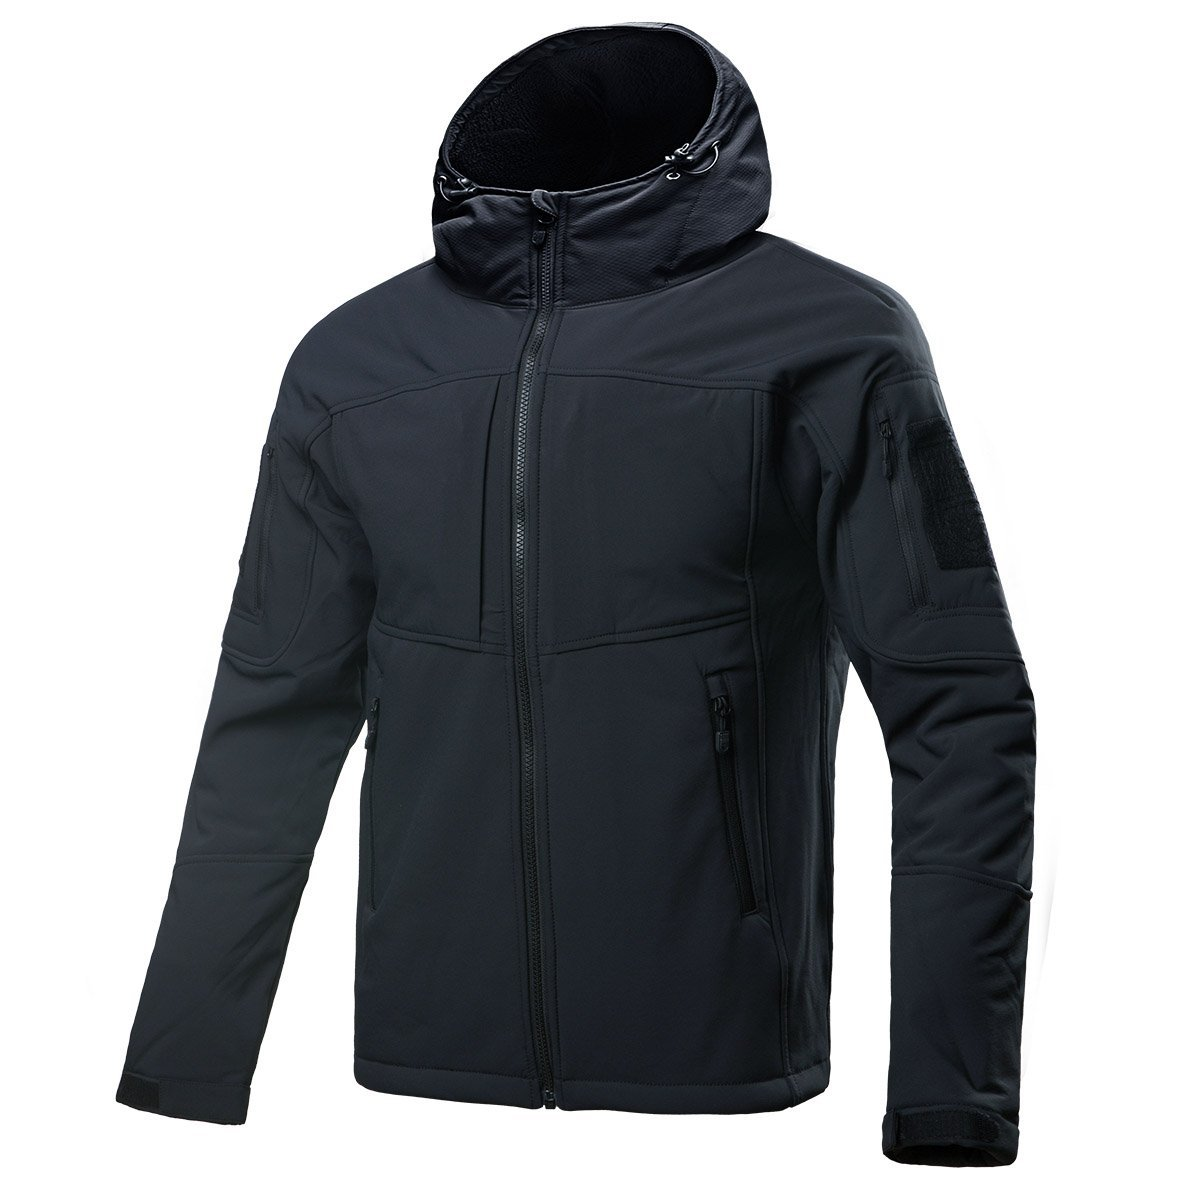 Water Resistance Winter Spring Jacket - FREE SODLIER Soft Shell Fleece Outwear Hooded Camping Coat Windproof Tactical Jacket